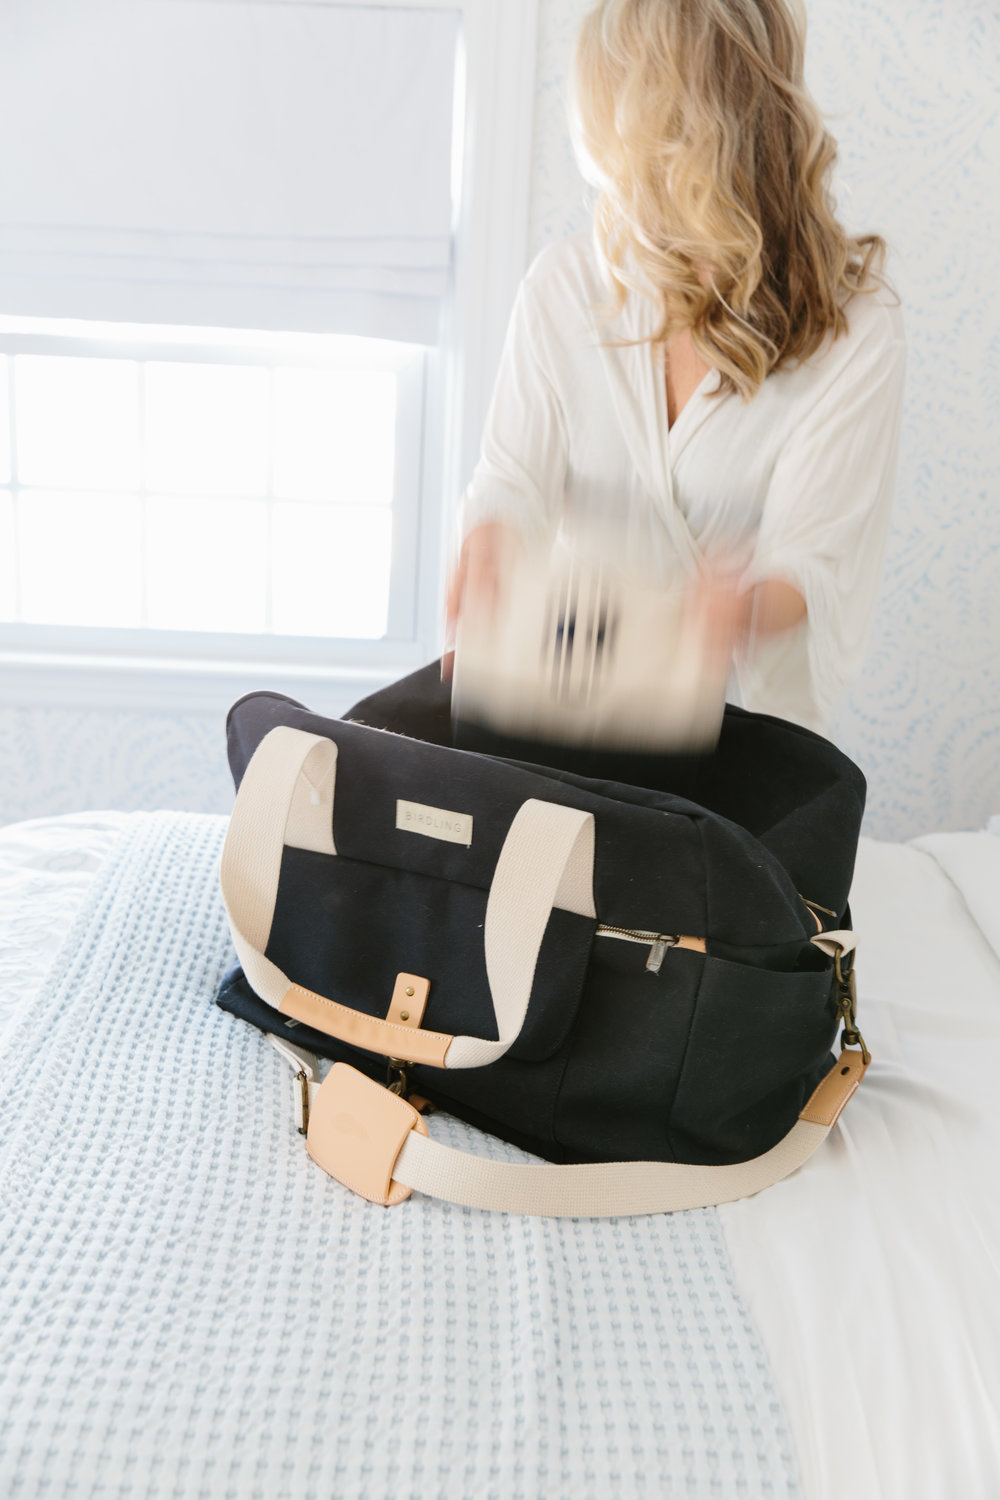 Postpartum Hospital Bag Must Haves from Abby Capalbo | Photography: Erin McGinn